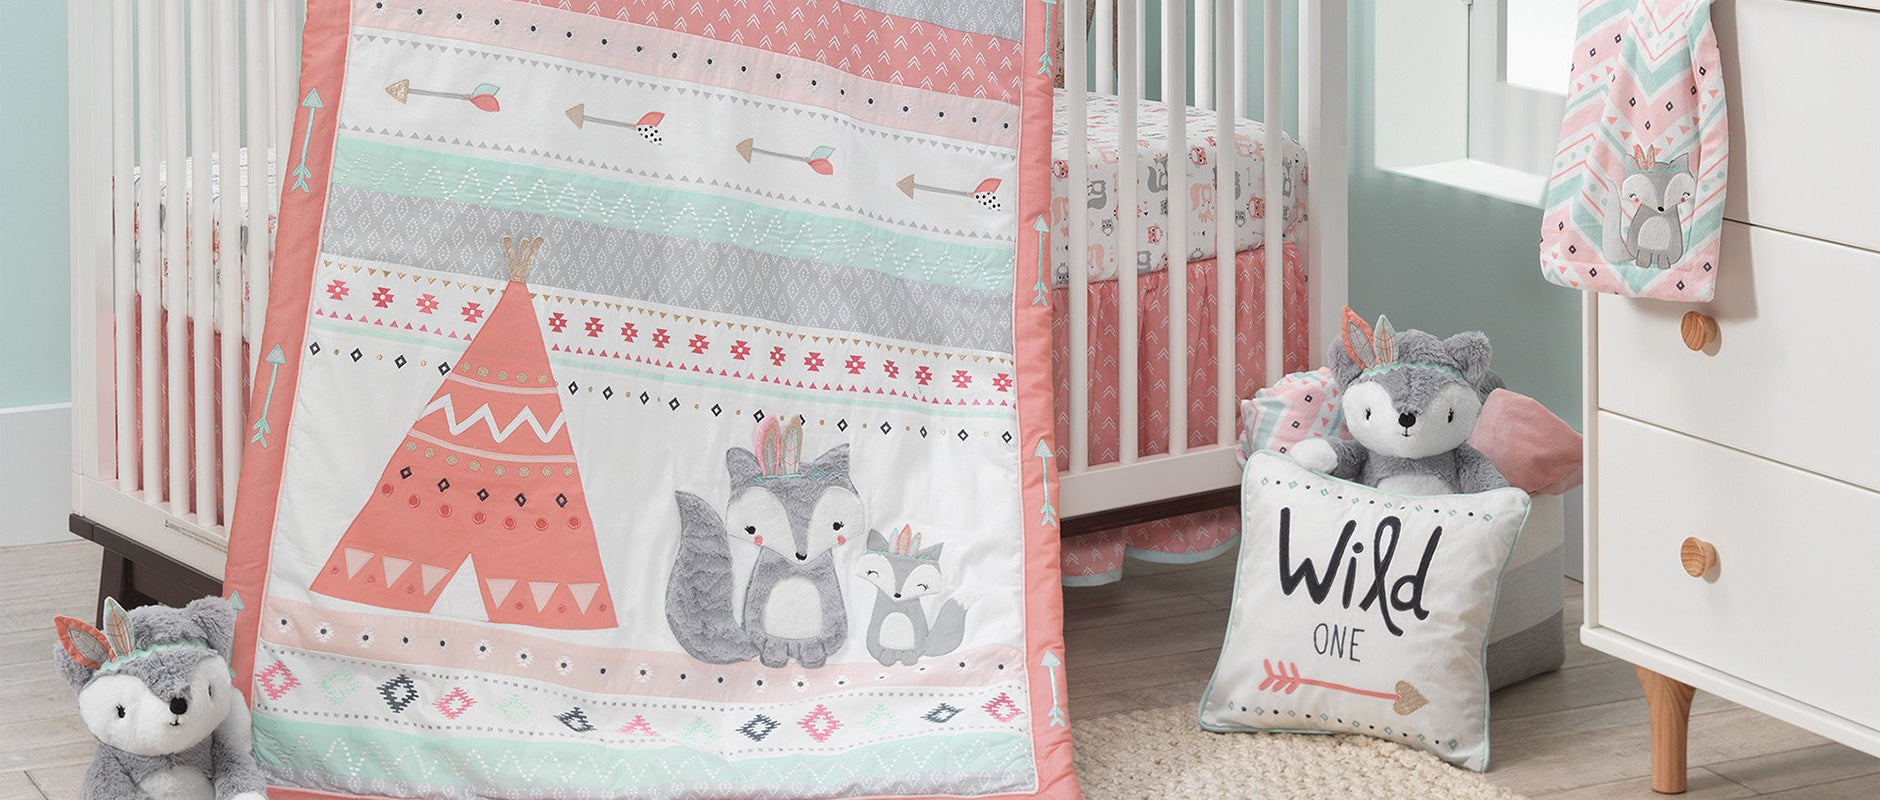 Lambs & Ivy Little Spirit Crib Bedding